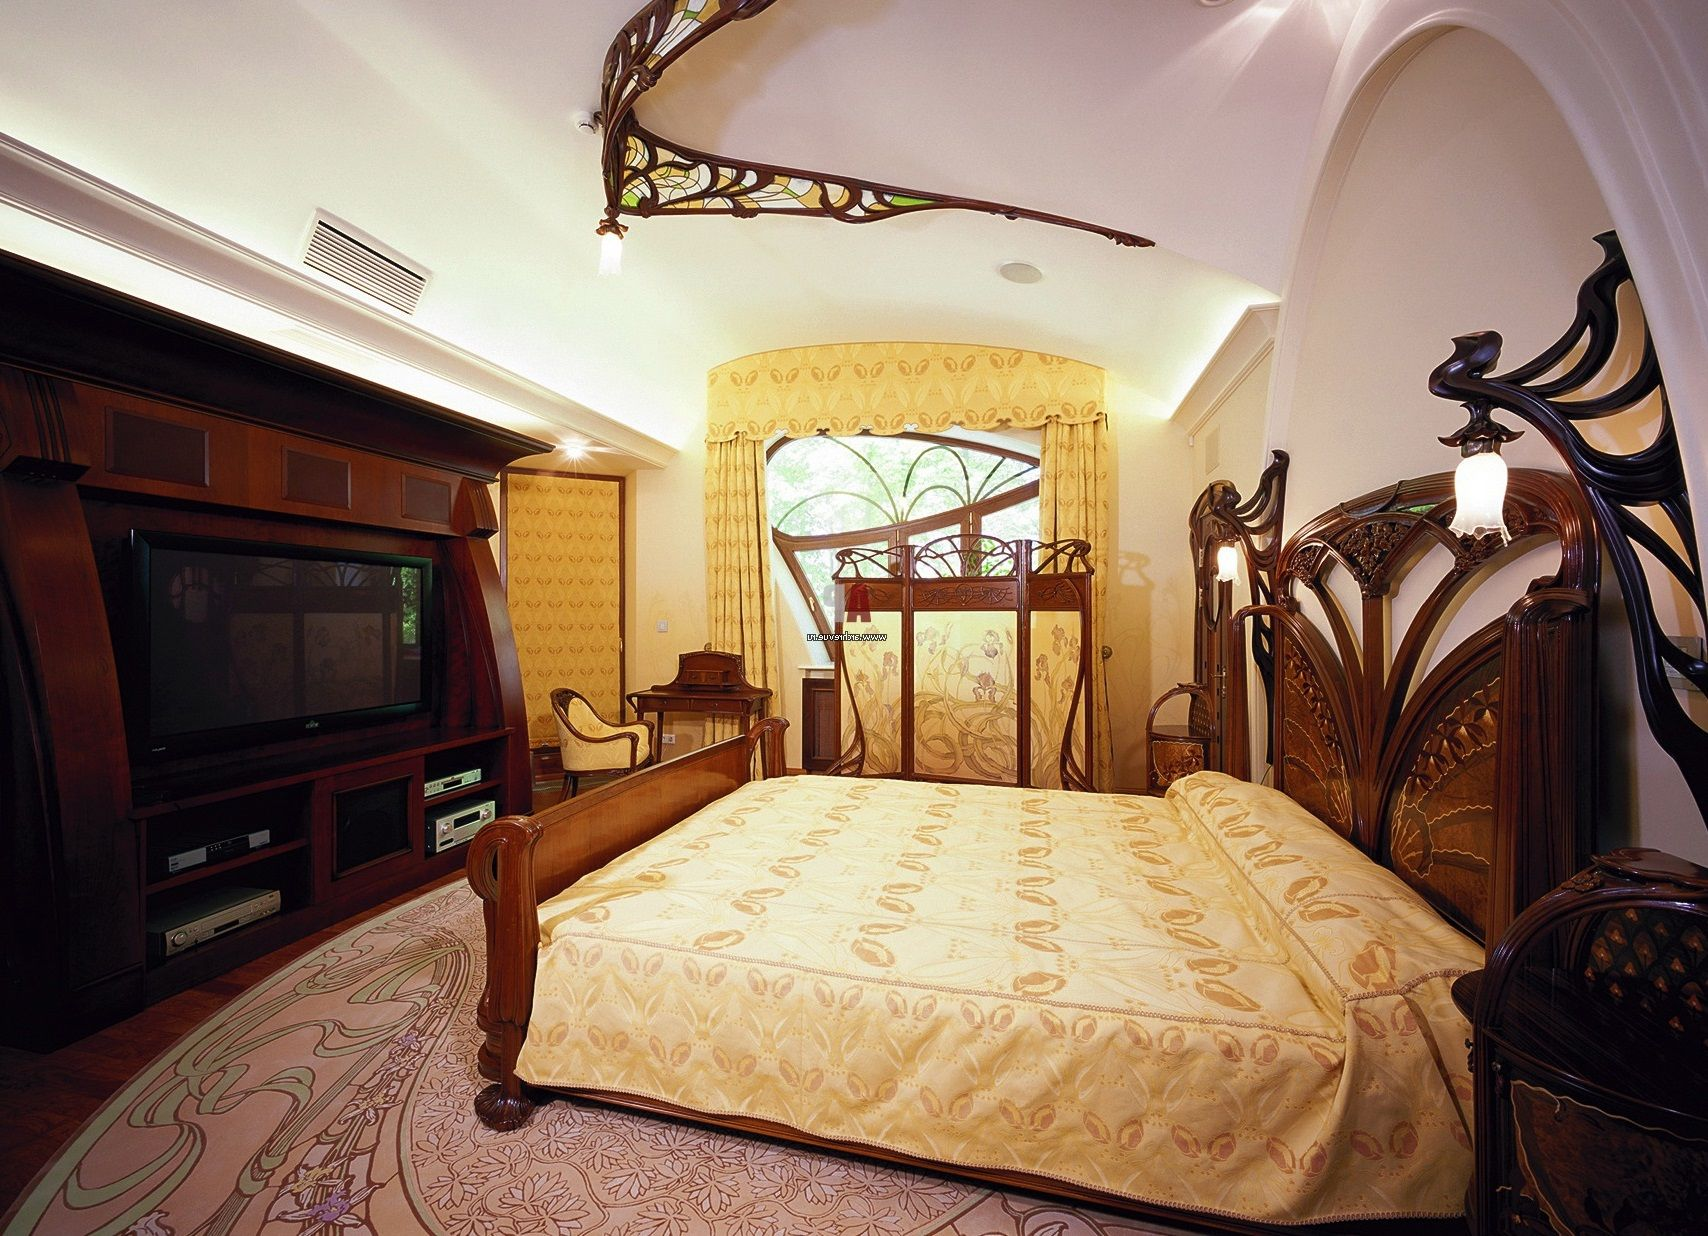 Bedroom Styled In The Art Nouveau Style Carved Wooden Bed Crown